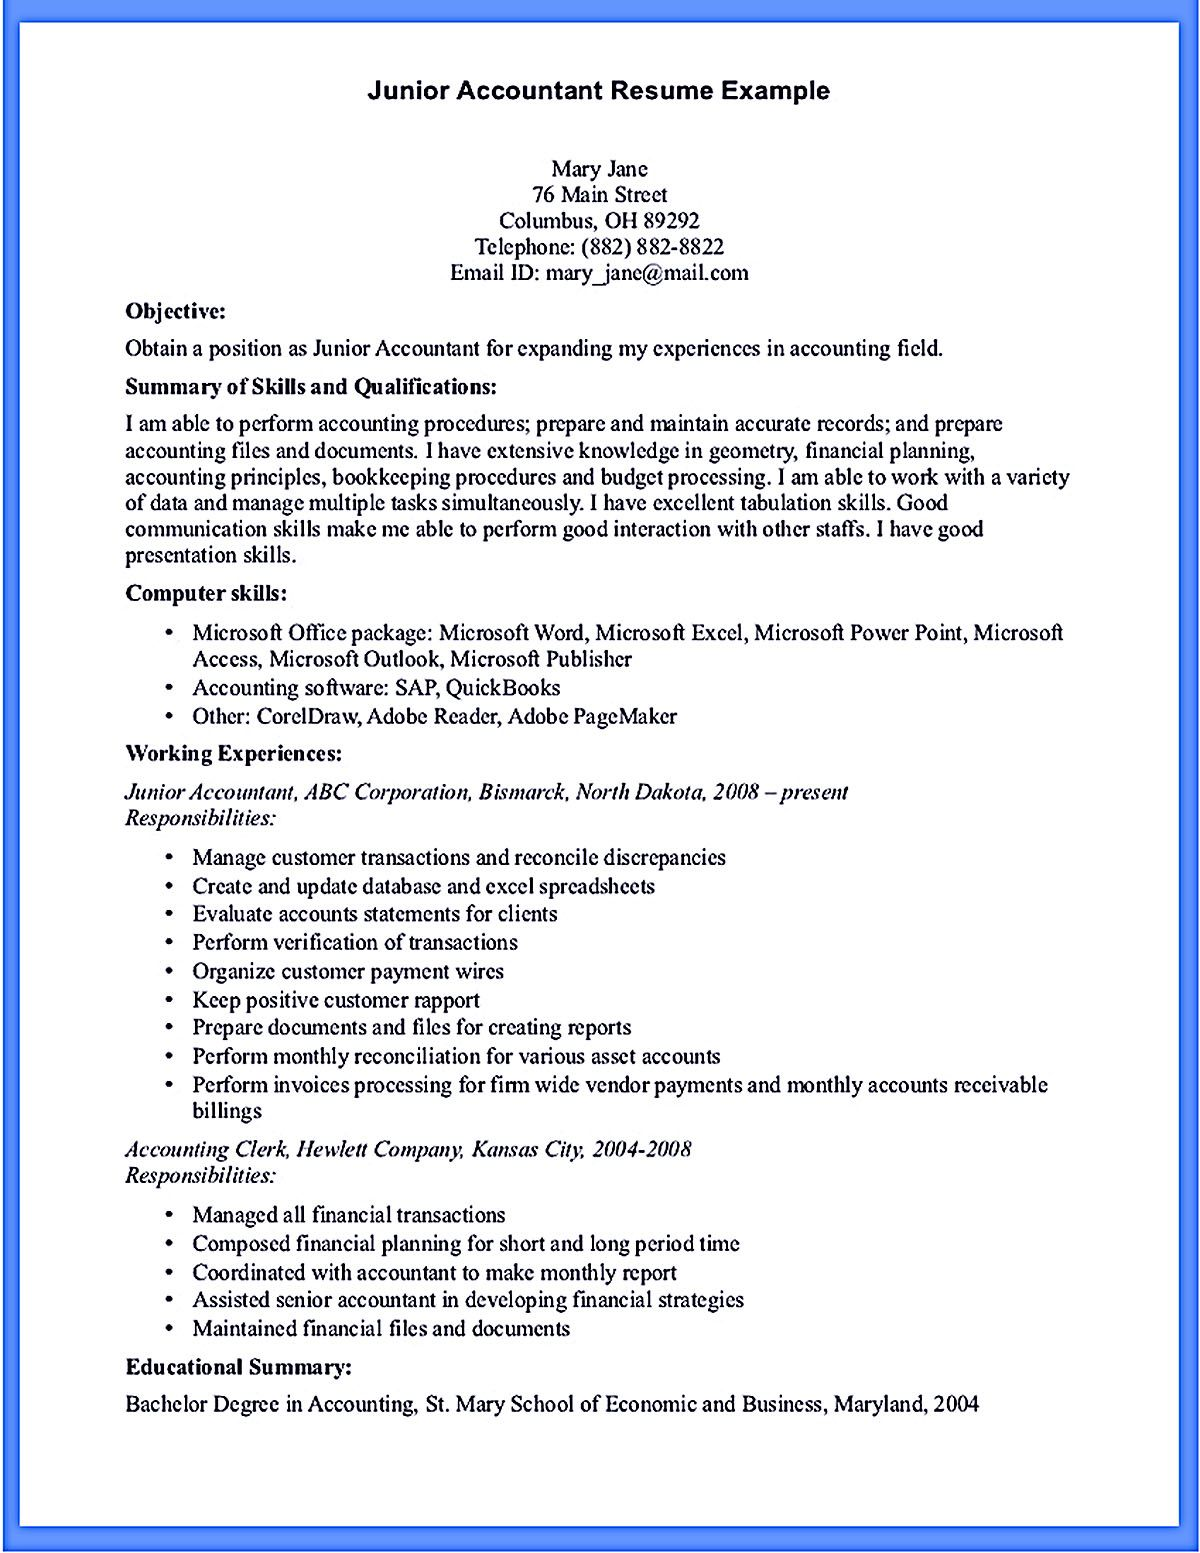 Writing Accountant Resume Sample Is Not That Complicated As How The Work Of Accountant Will Be You Can Accountant Resume Resume Examples Resume Format In Word